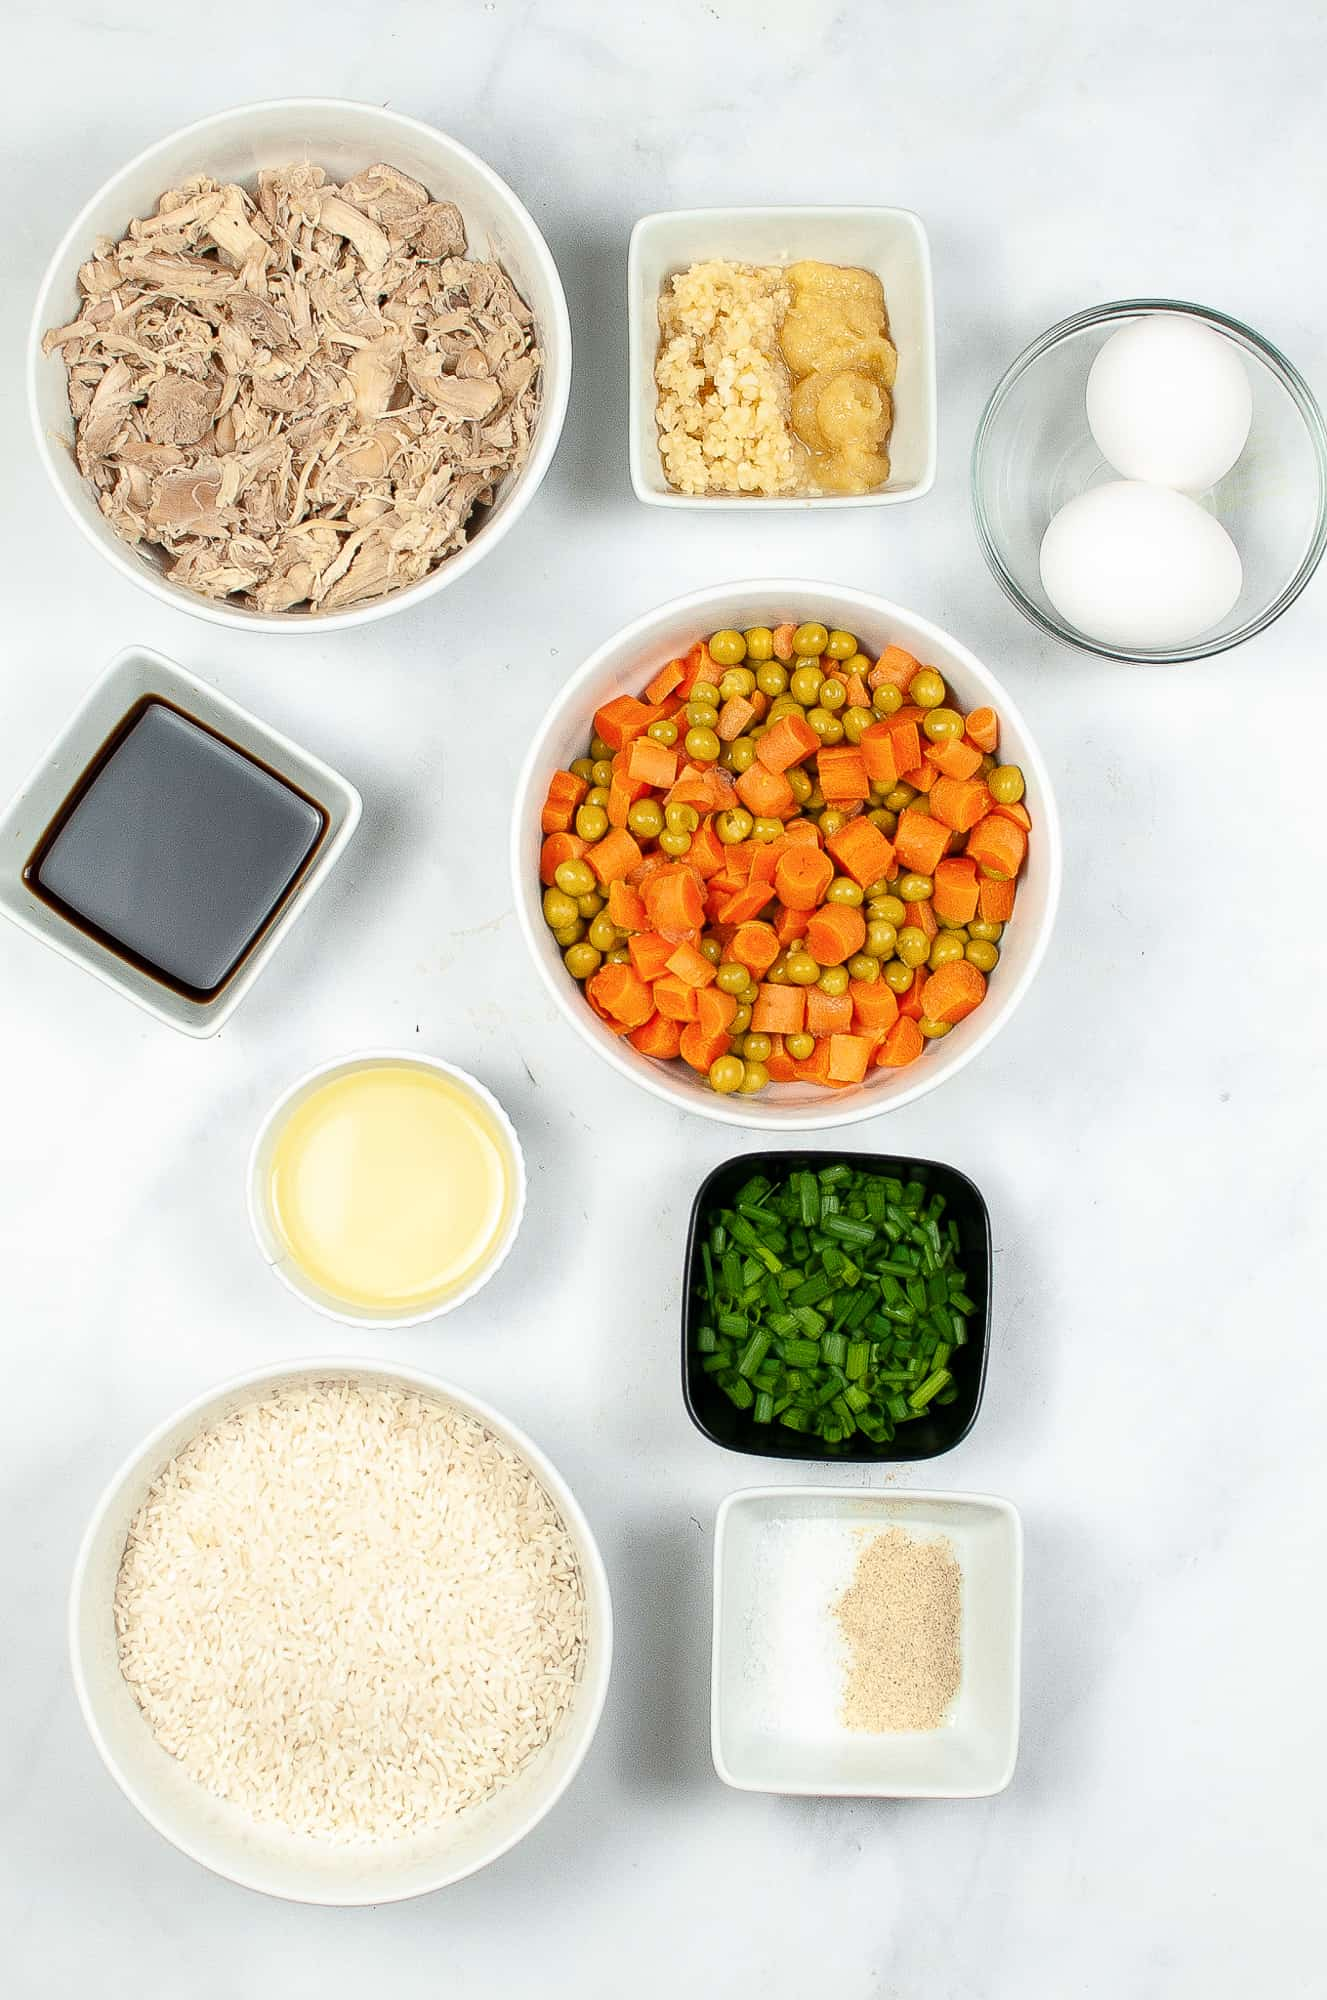 ingredients for fried rice in ingredient bowls